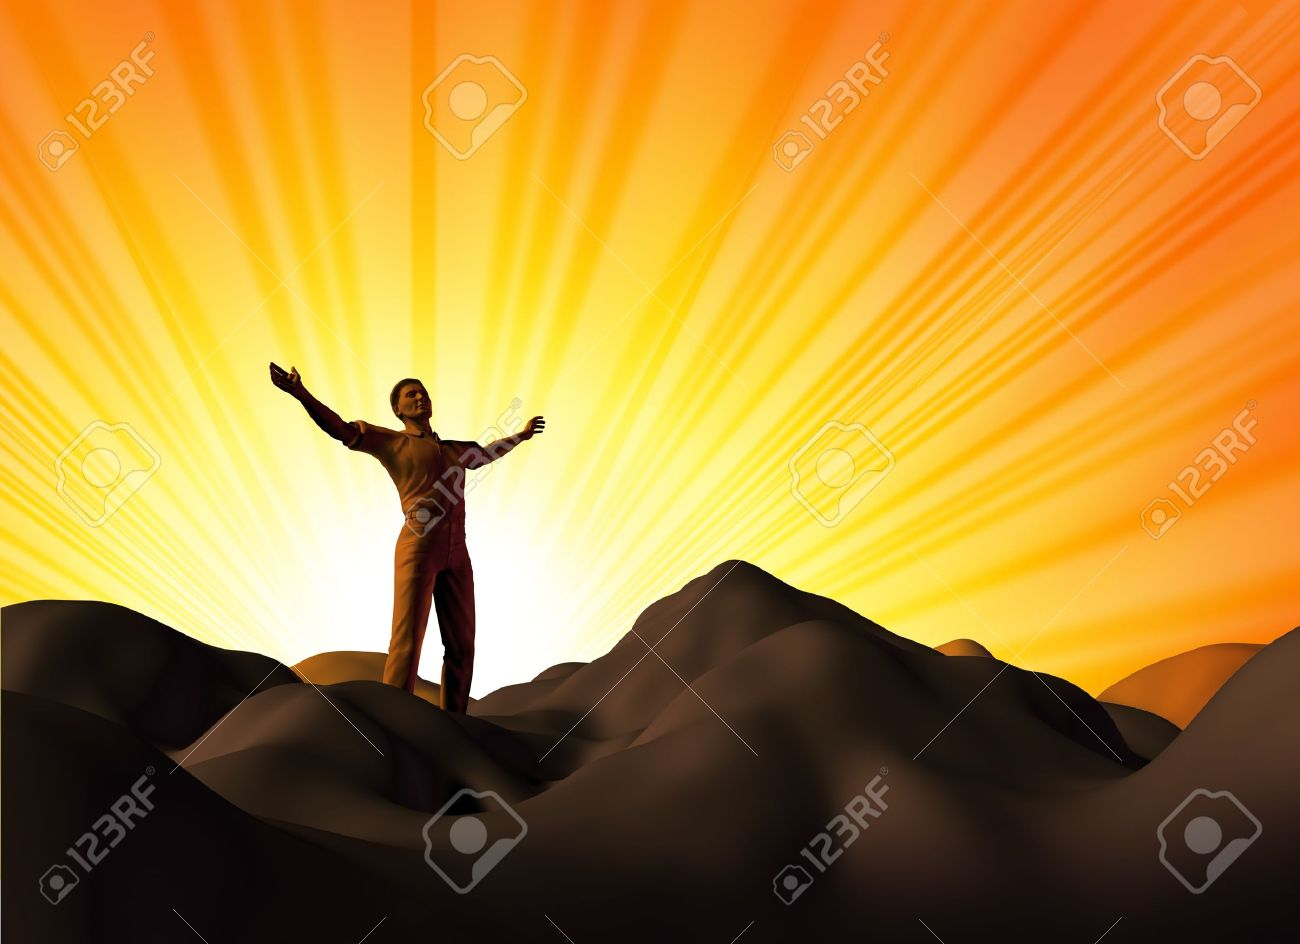 Worship and faith symbol represented by a man on a mountain top with his arms open on a glowing sunset background showing the concept of God and spirituality. Stock Photo - 10299797